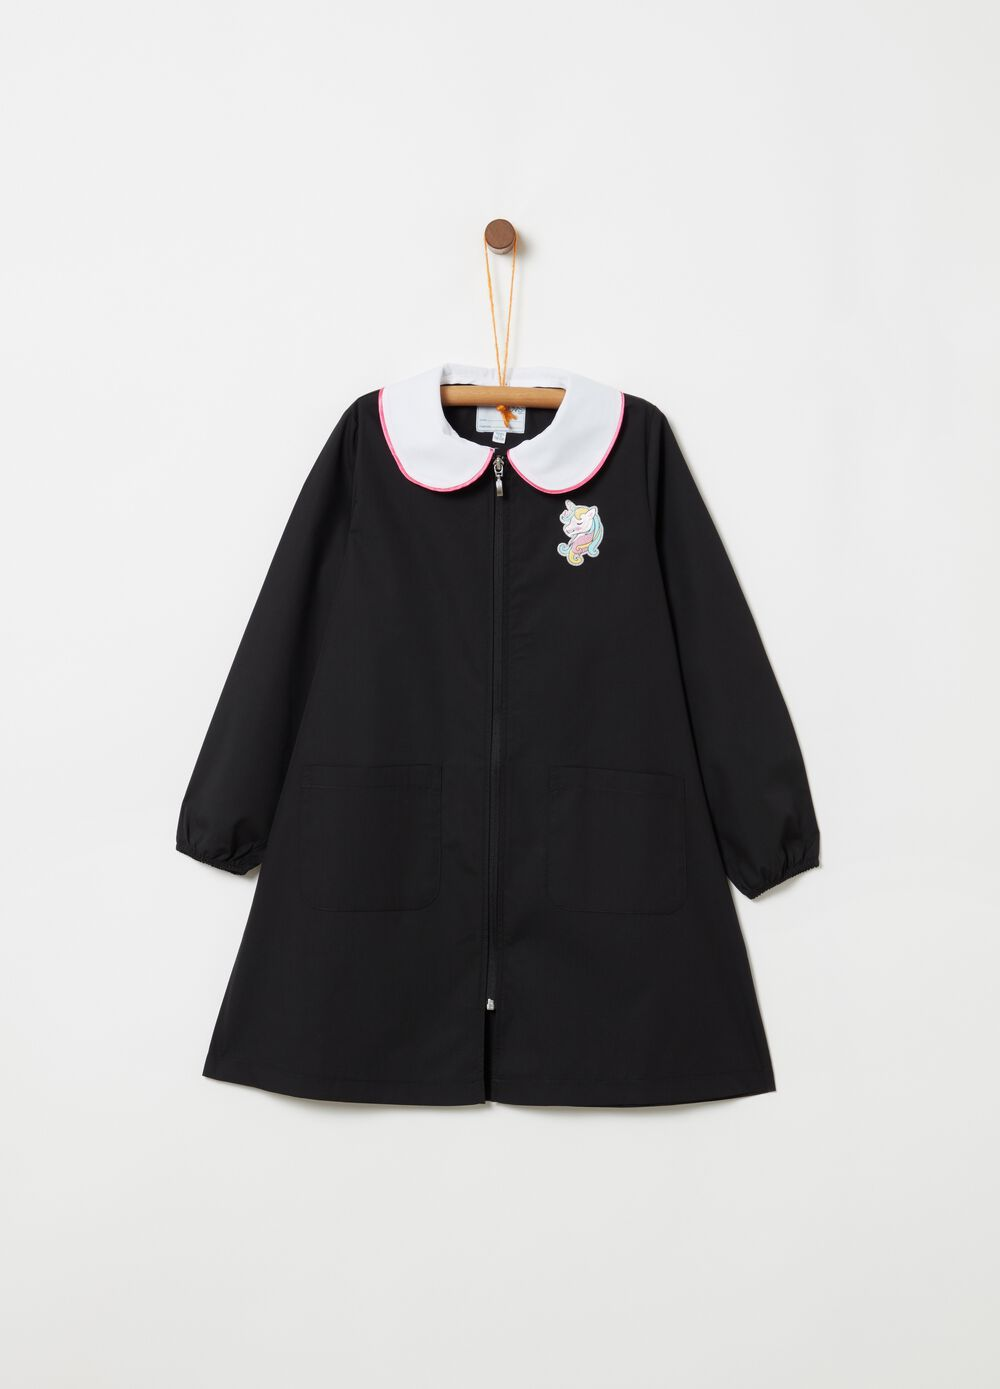 School smock with glittery embroidered unicorn